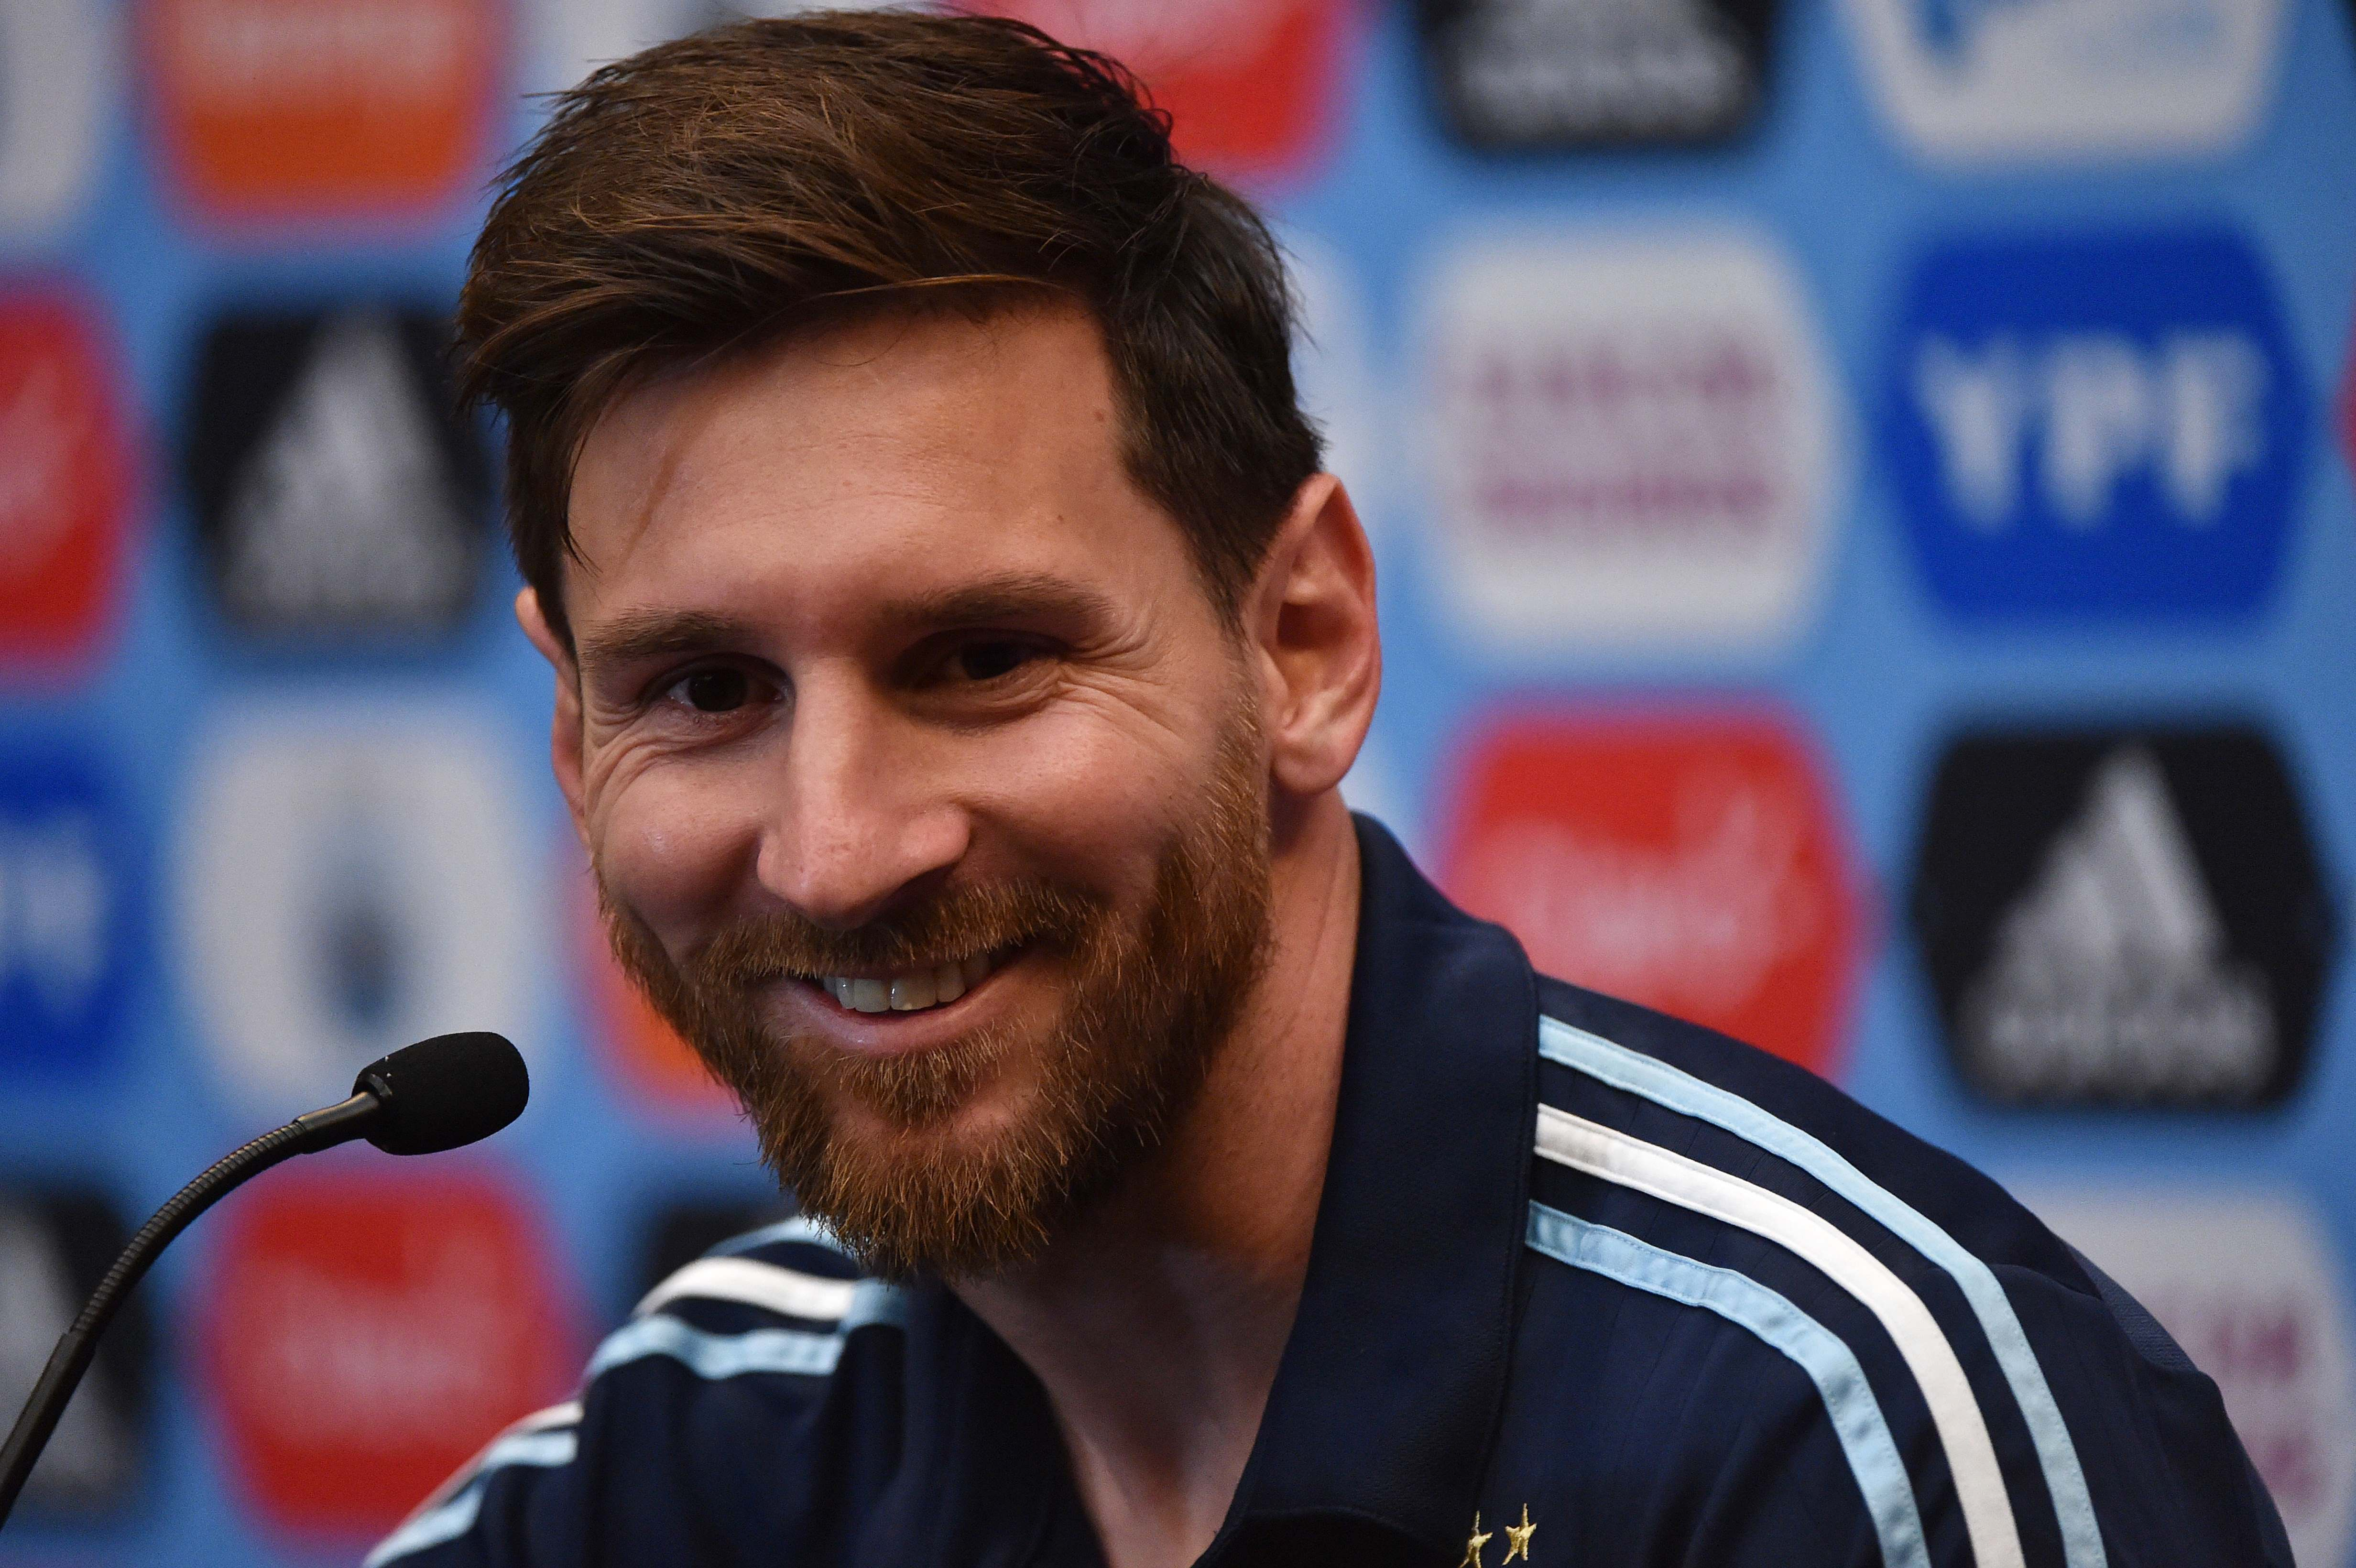 Lionel Messi es out of Retirement to Play for Argentina Again